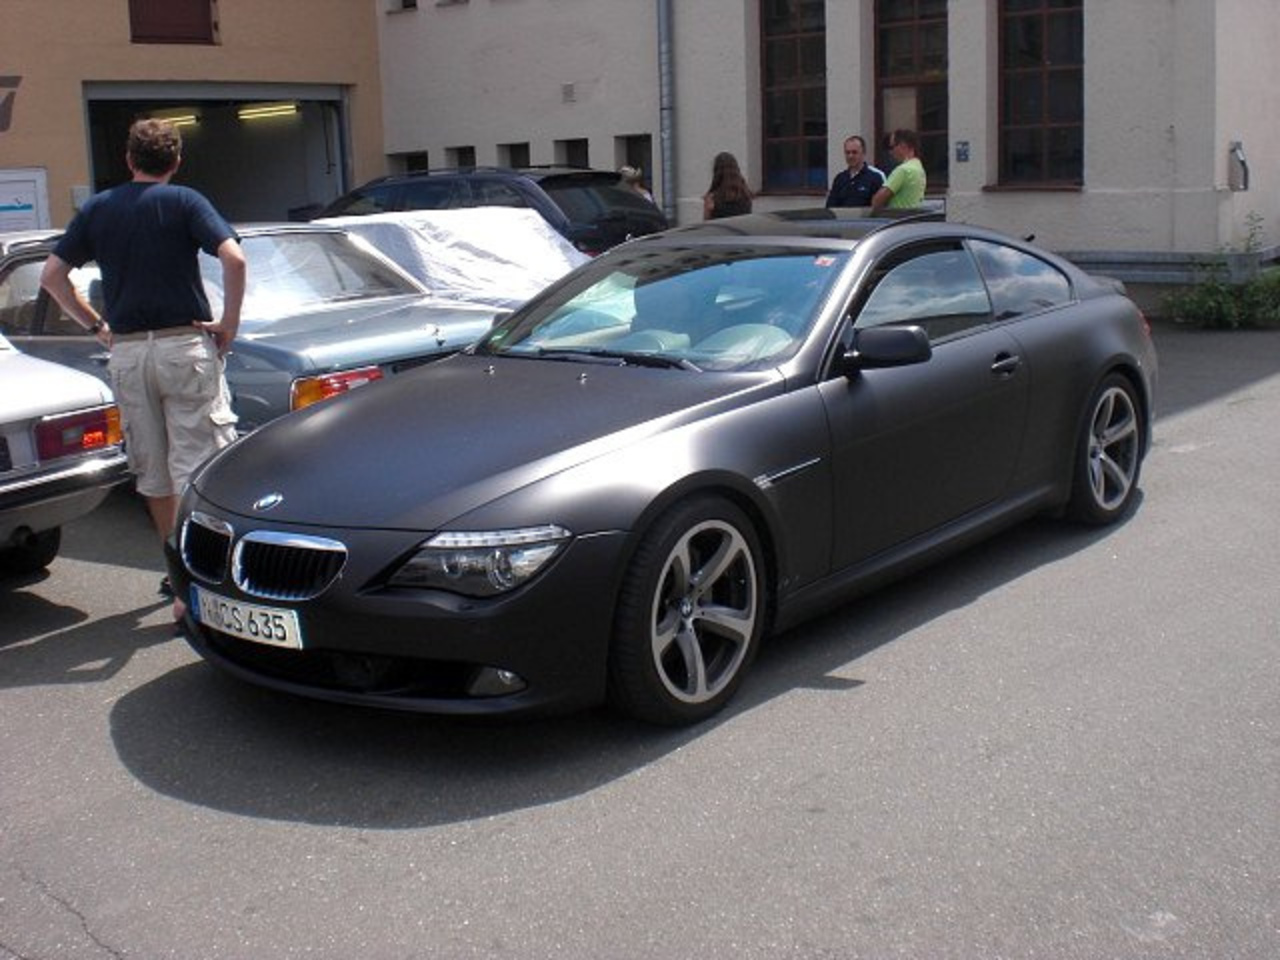 MATT BMW 6 SERIES | Flickr - Photo Sharing!